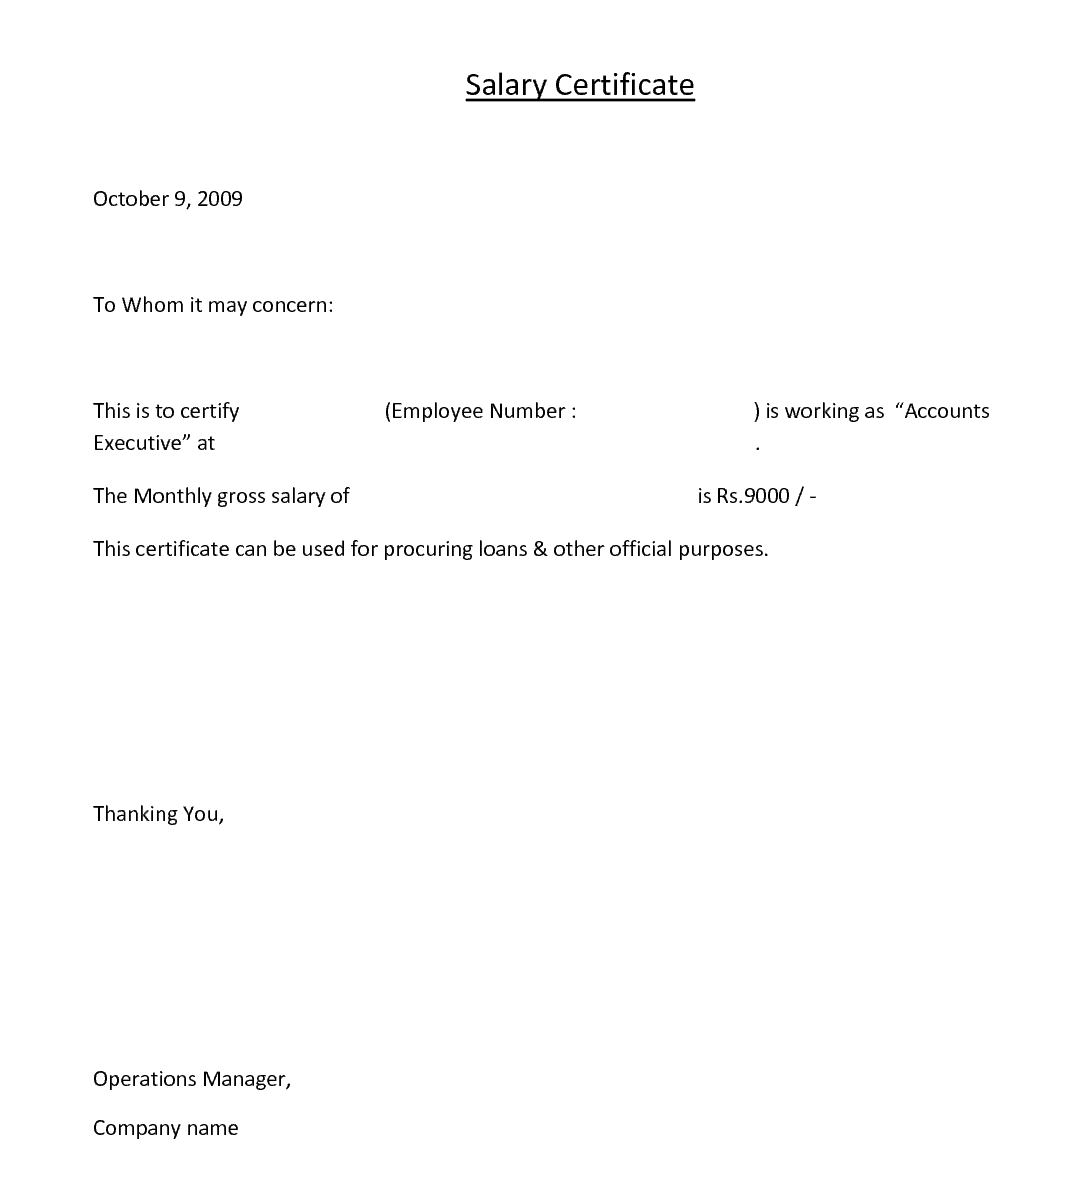 Top 5 Resources To Get Free Salary Certificate Templates Word – Salary Certificate Template